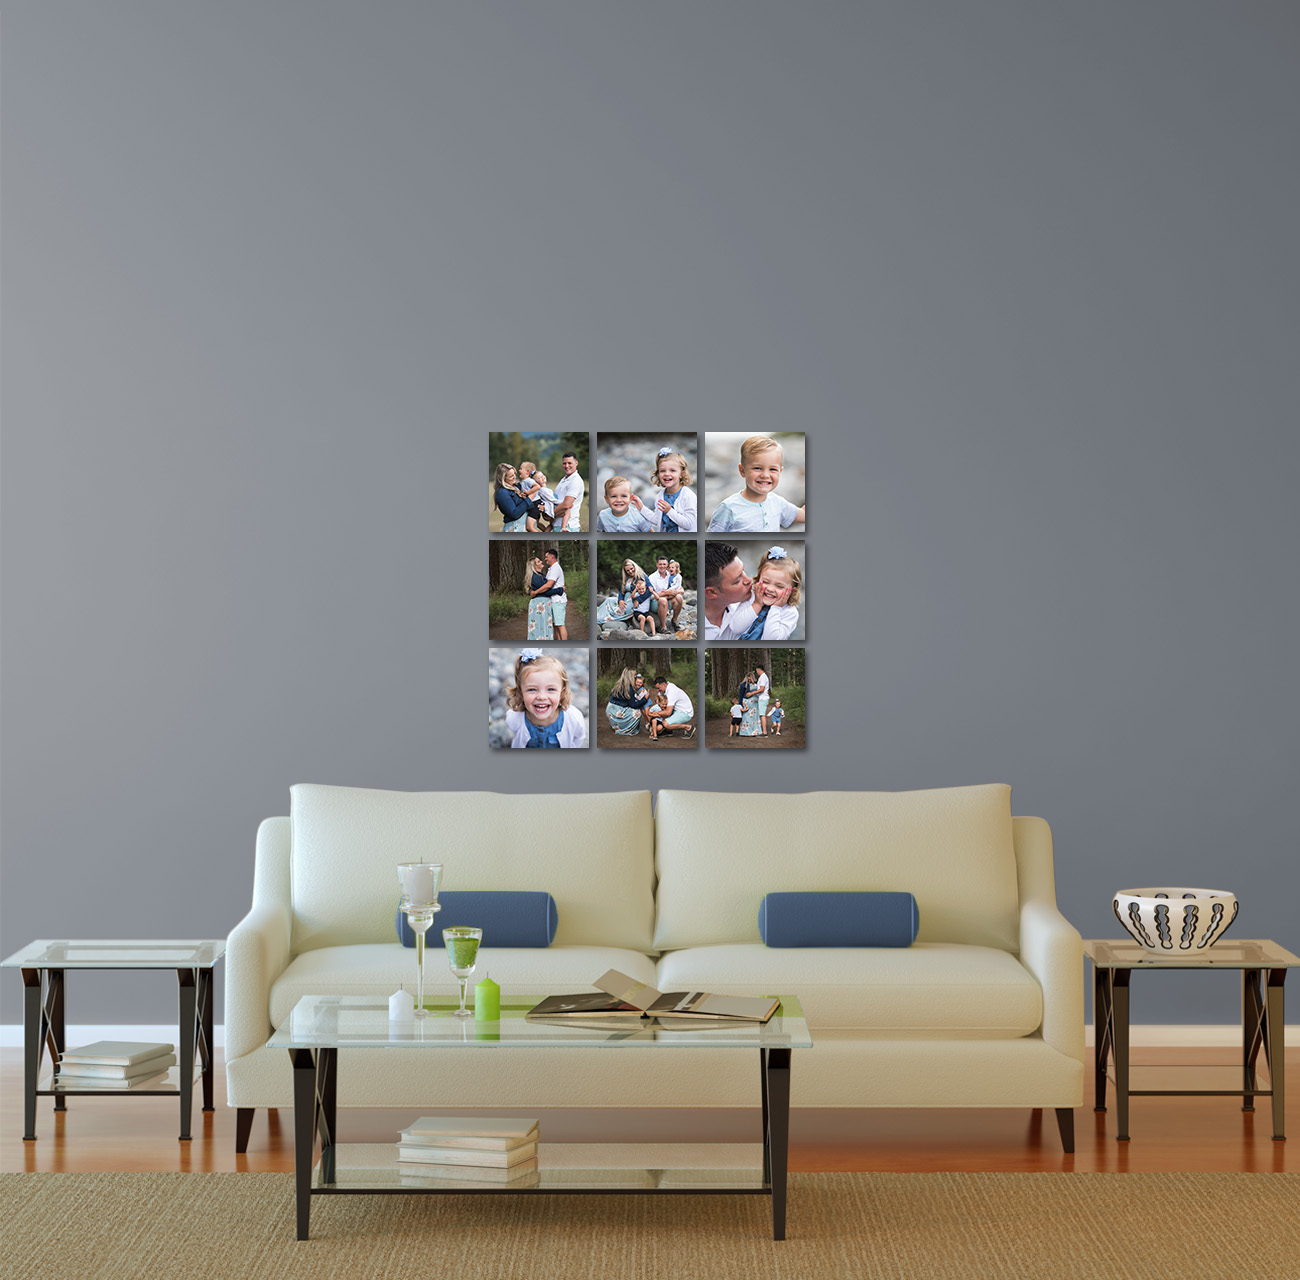 (9) 10x10 Canvas Wrapped Photographs